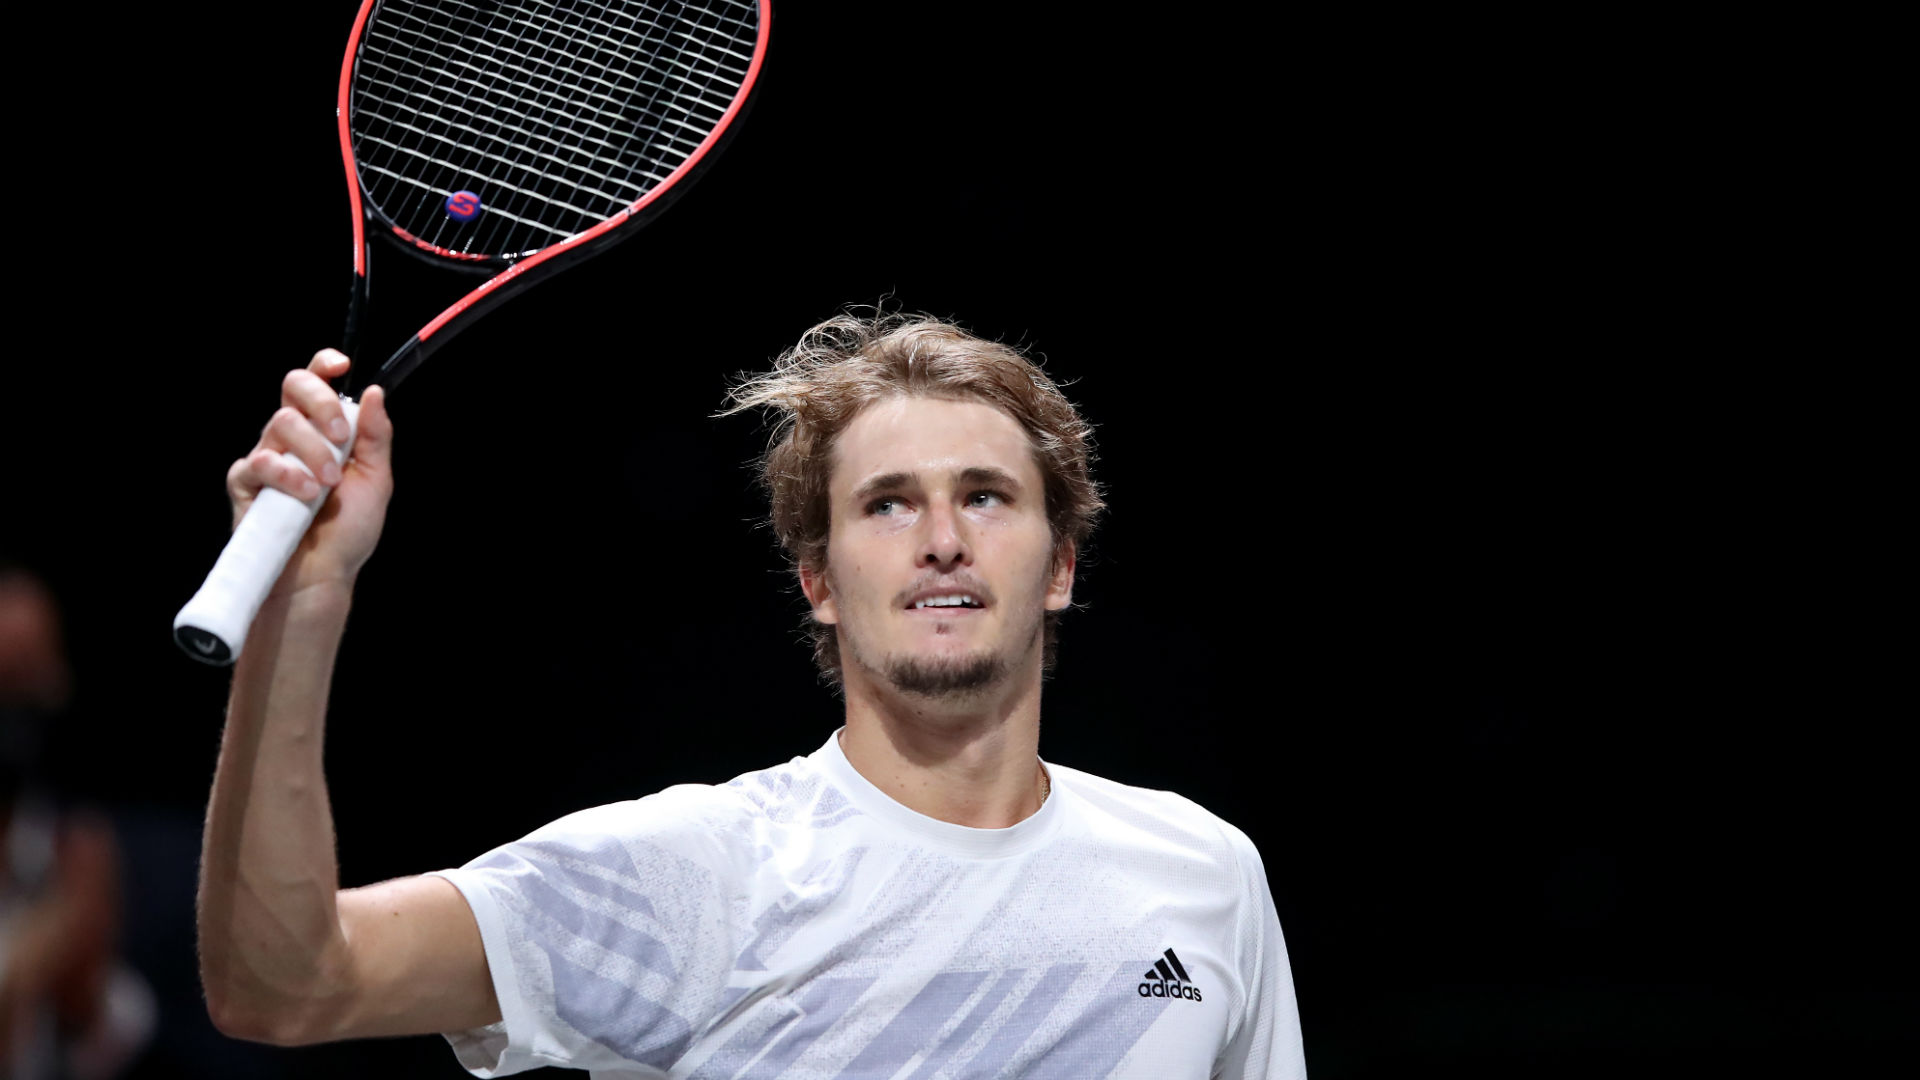 Zverev clinches back-to-back titles with victory in Cologne